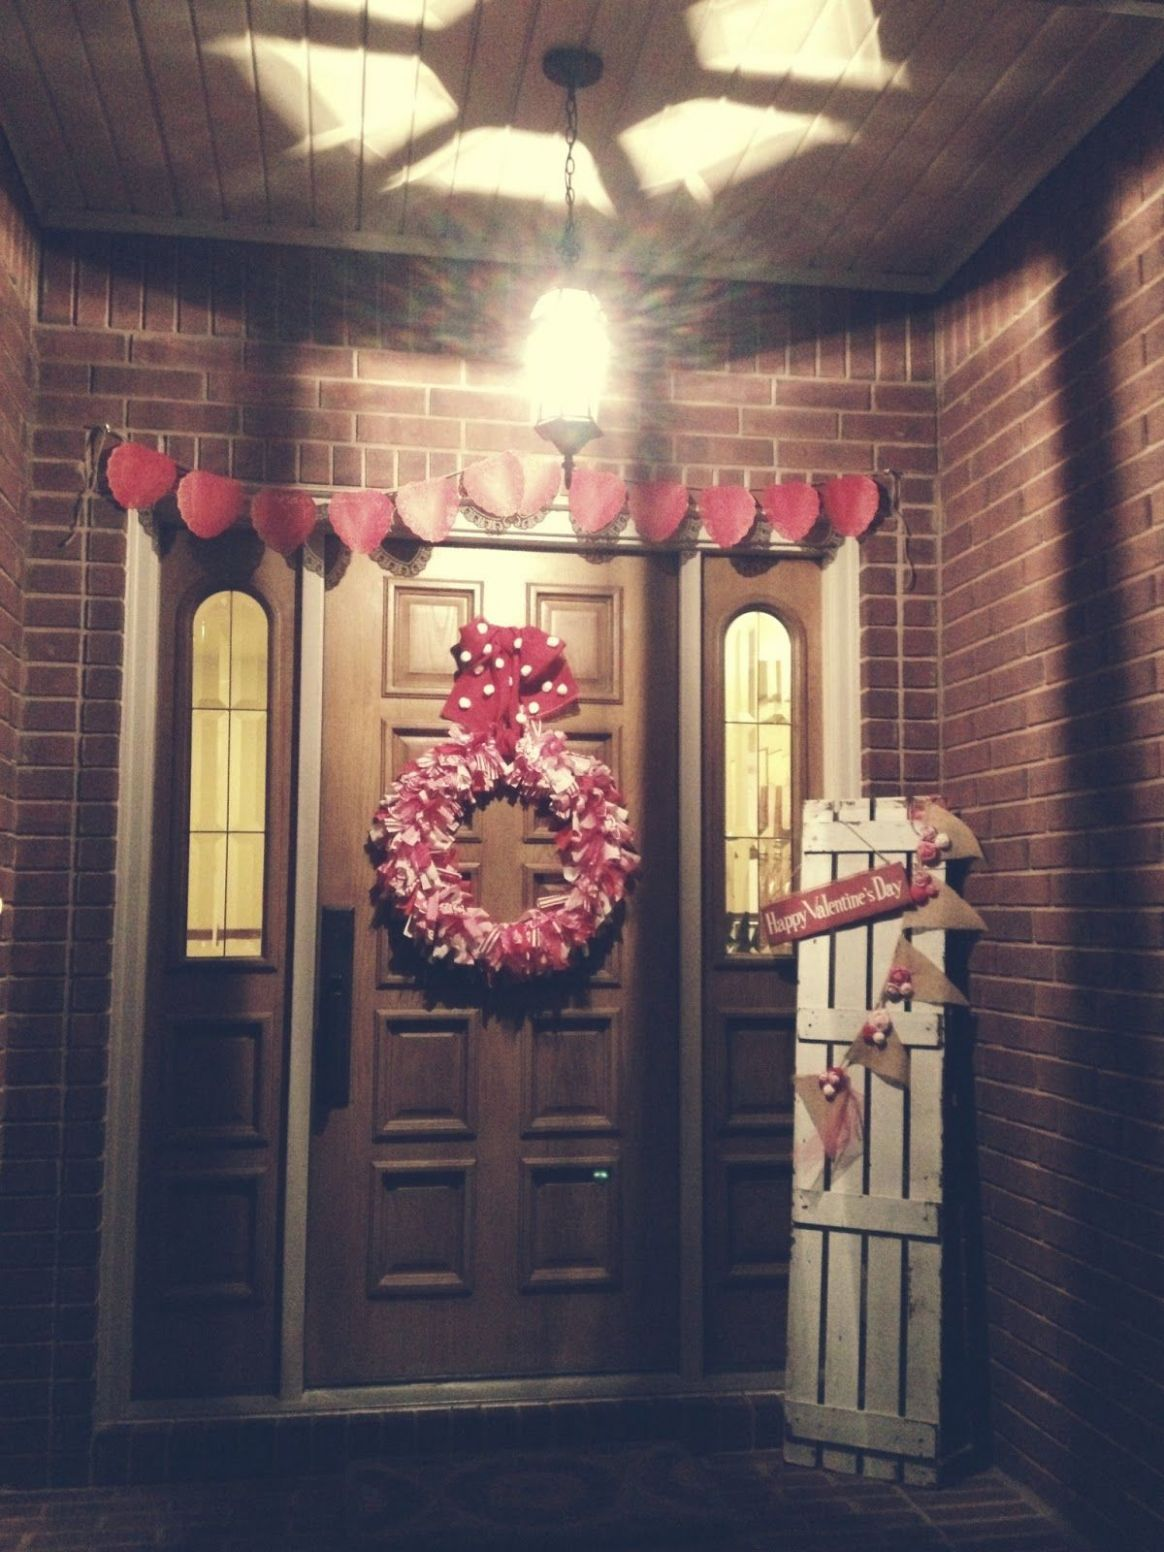 craft party. (With images) | Valentines outdoor decorations ...